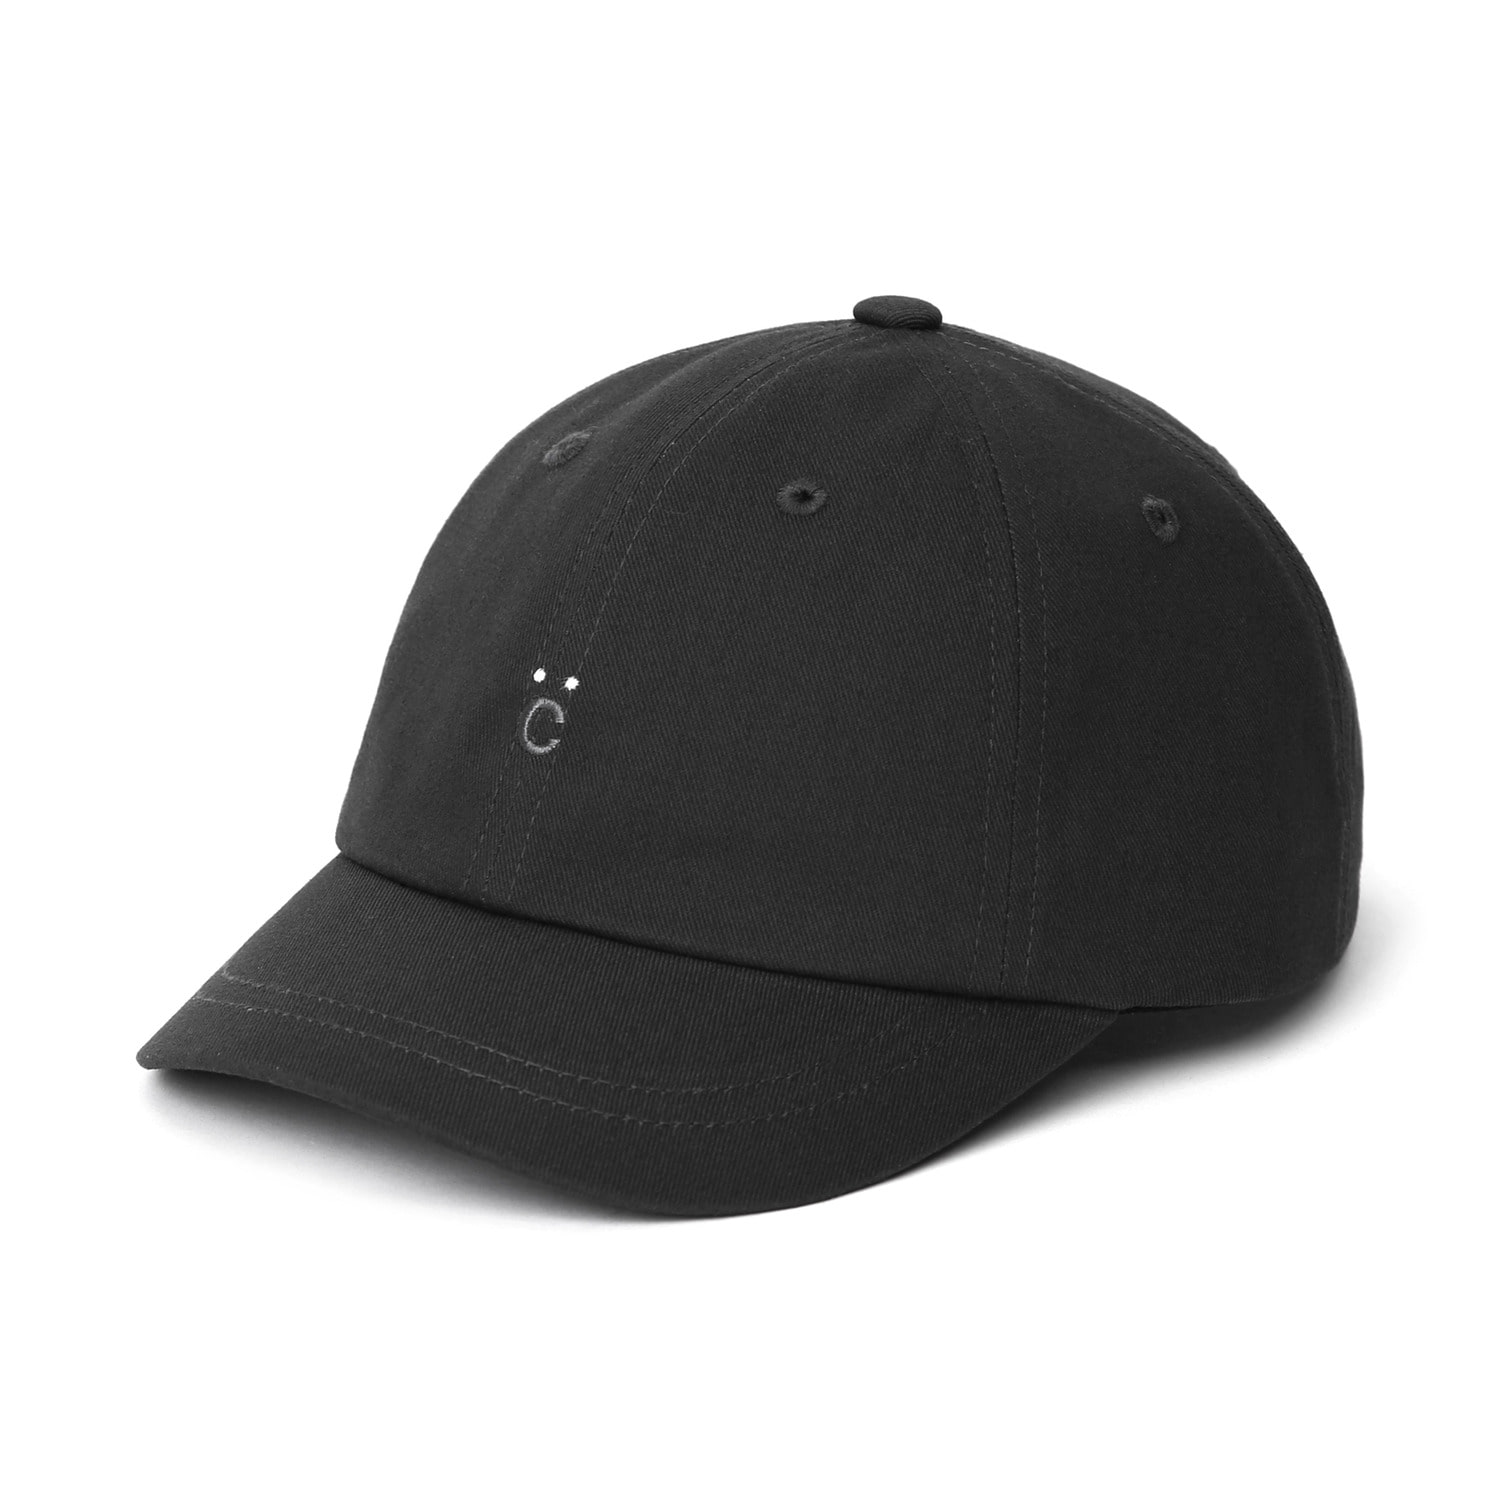 S VISOR / SHADOW LOGO / AUTHENTIC B B / C CHARCOAL